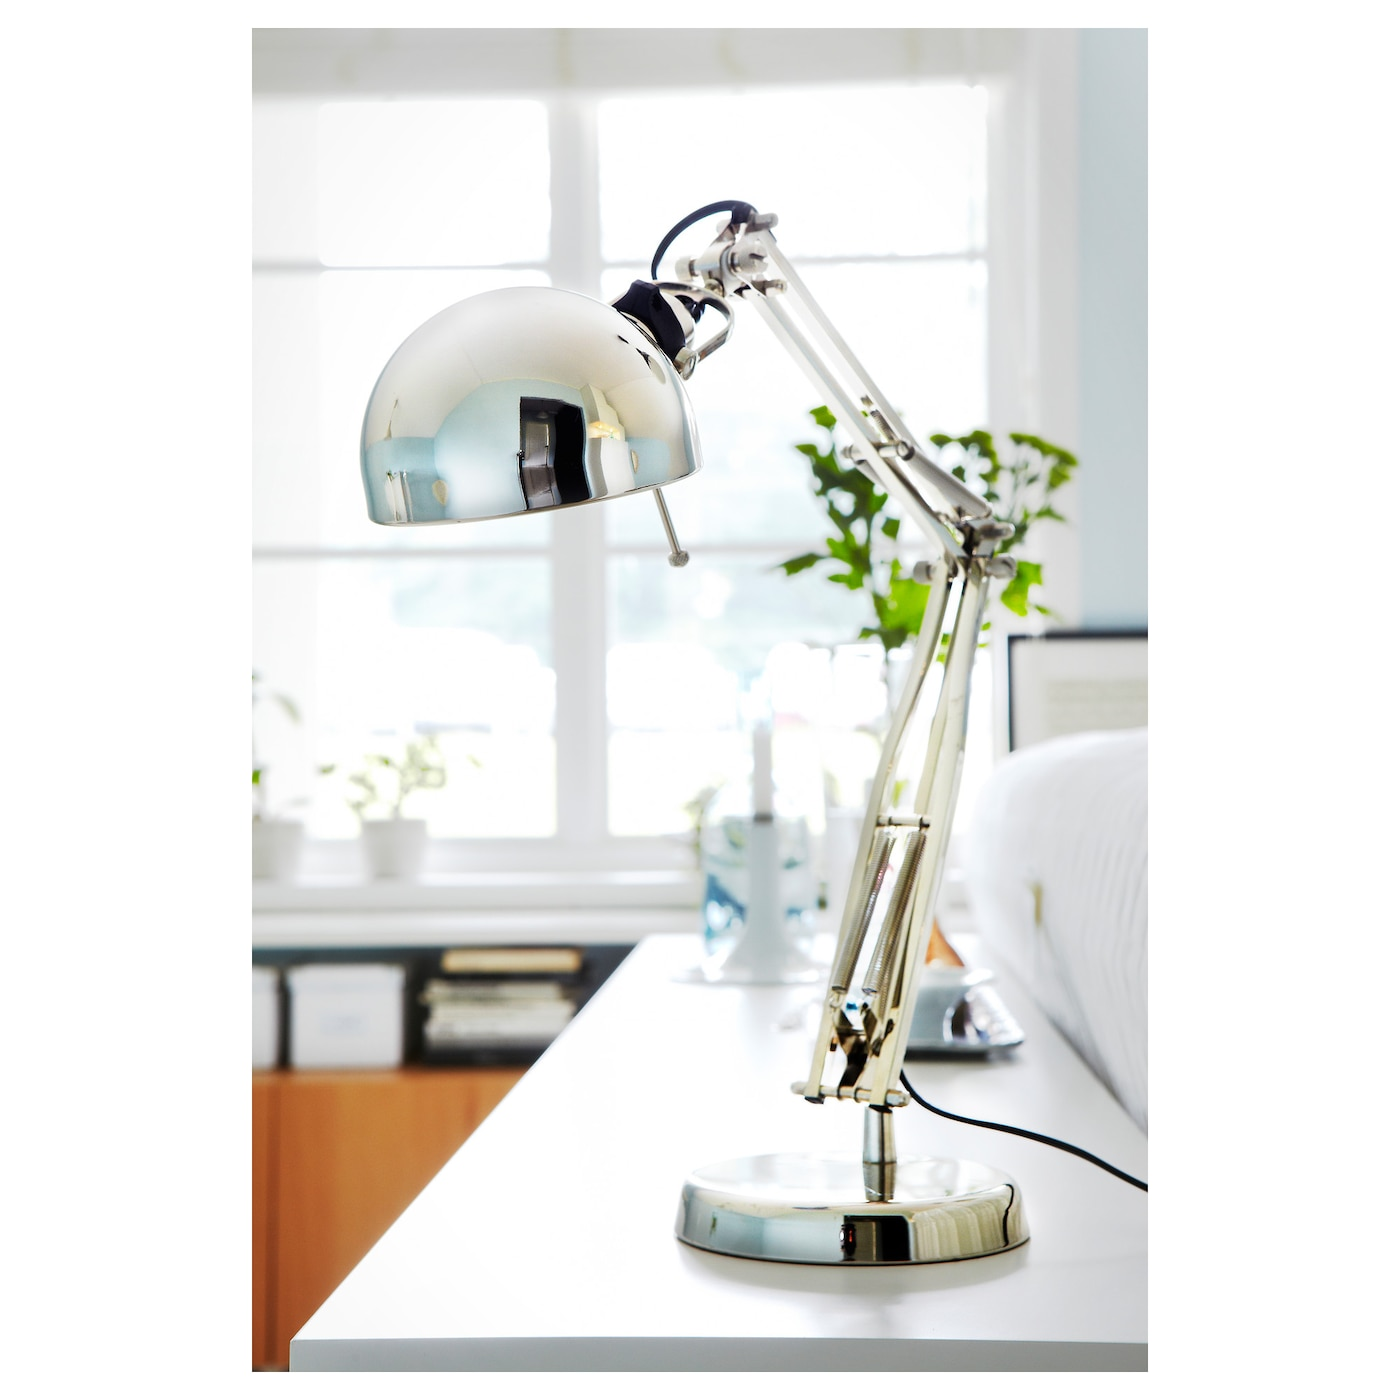 IKEA FORSÅ work lamp Provides a directed light that is great for reading.